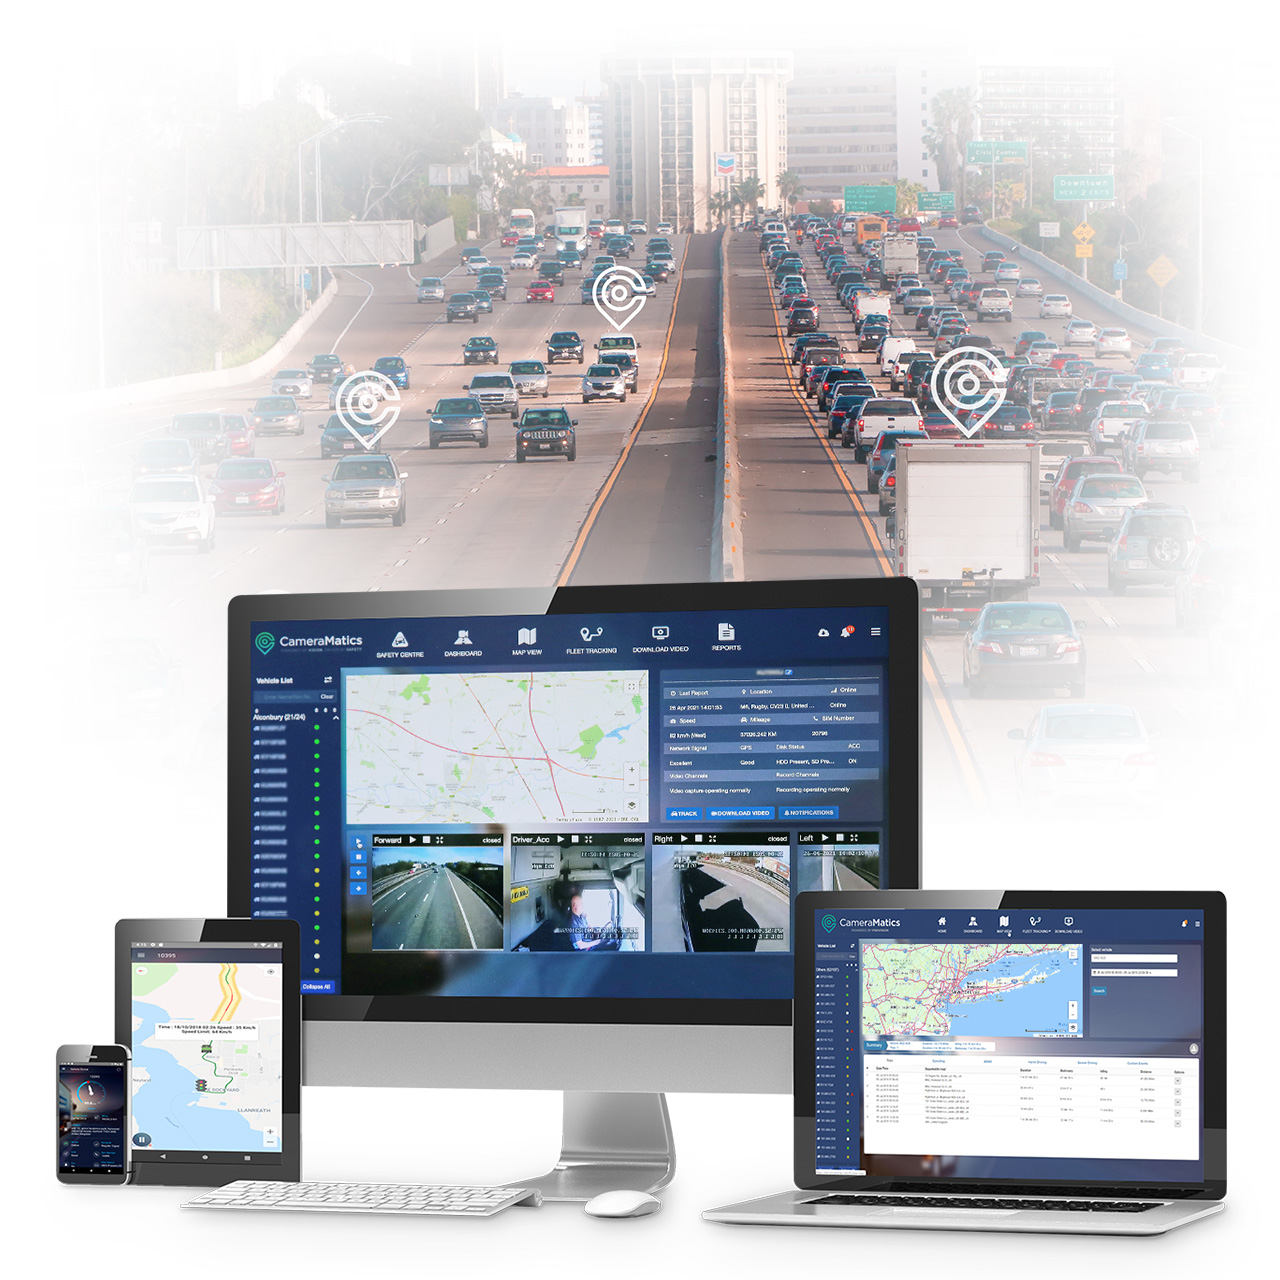 CameraMatics platform on smartphone, tablet, imac computer and laptop with highway in the background